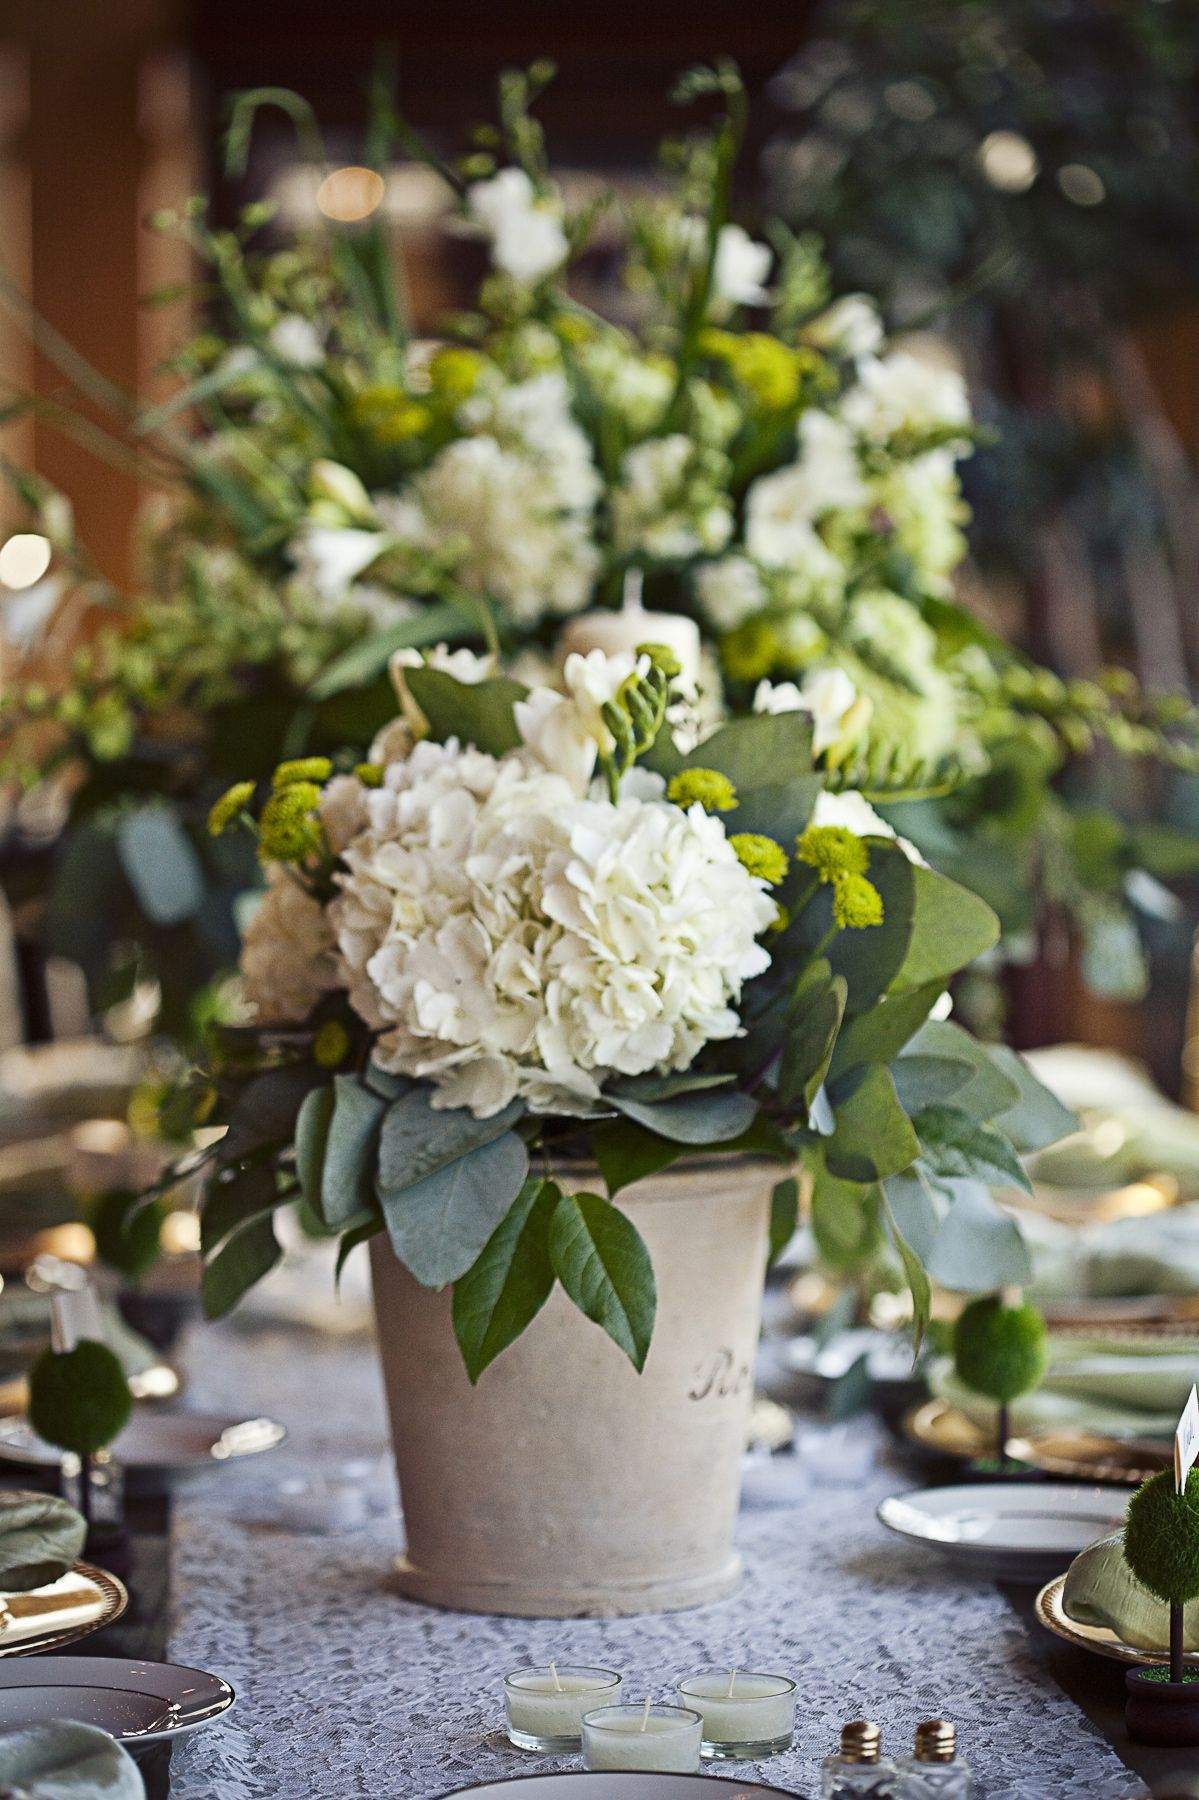 Gorgeous green potted hydrangea centerpiece photos by